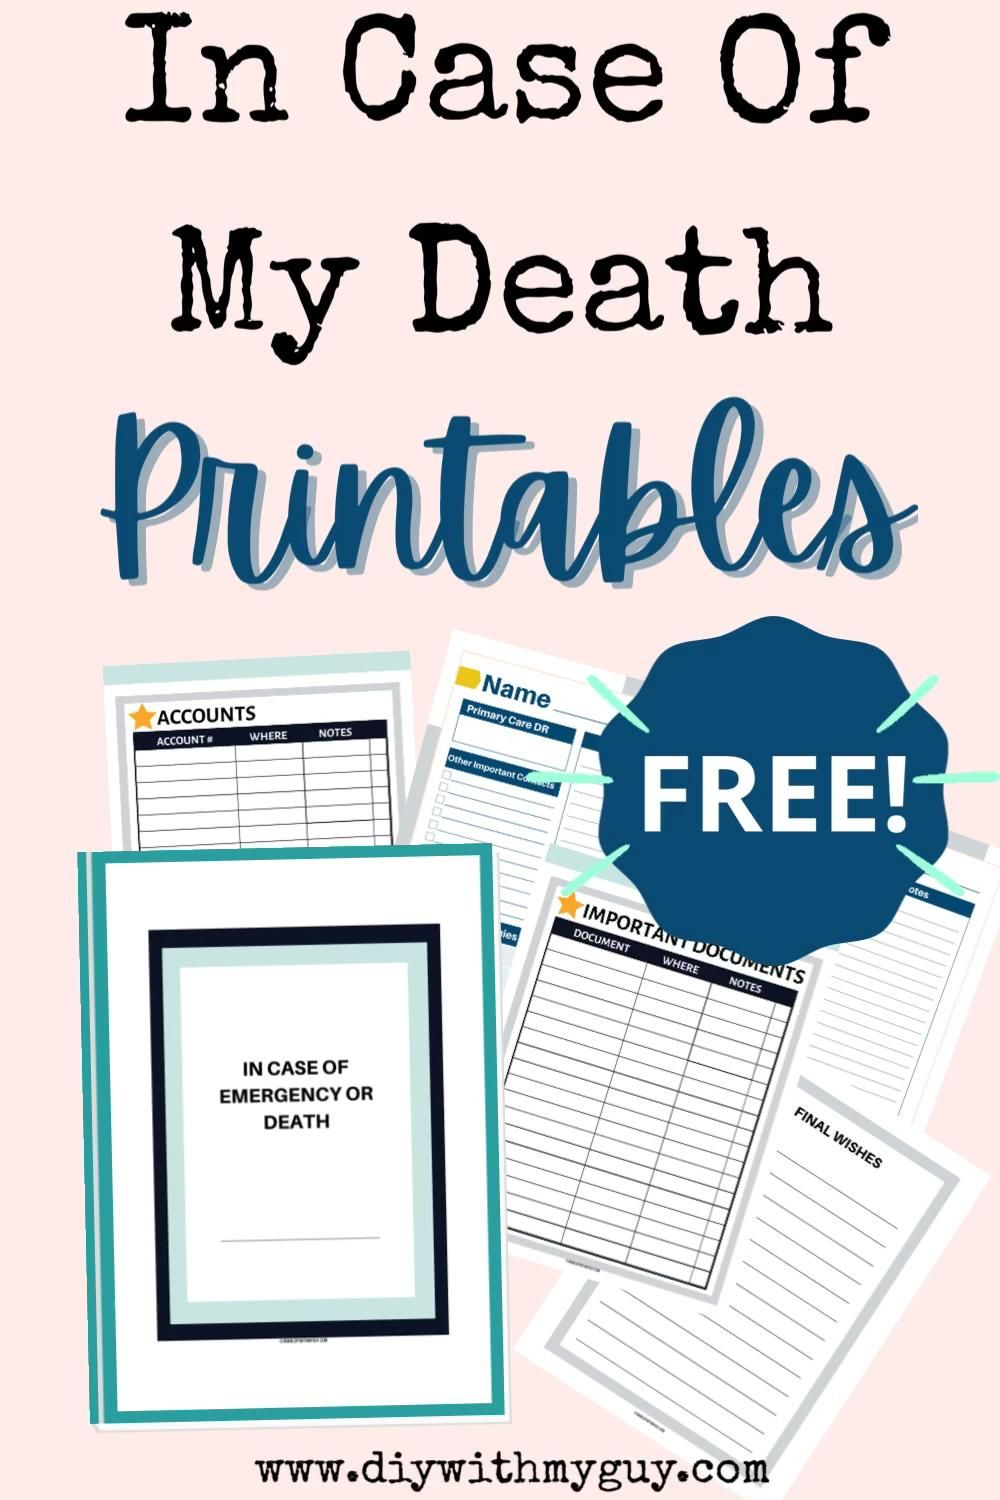 In The Event Of My Death Printables (FREE) Organizer - DIY With My Guy